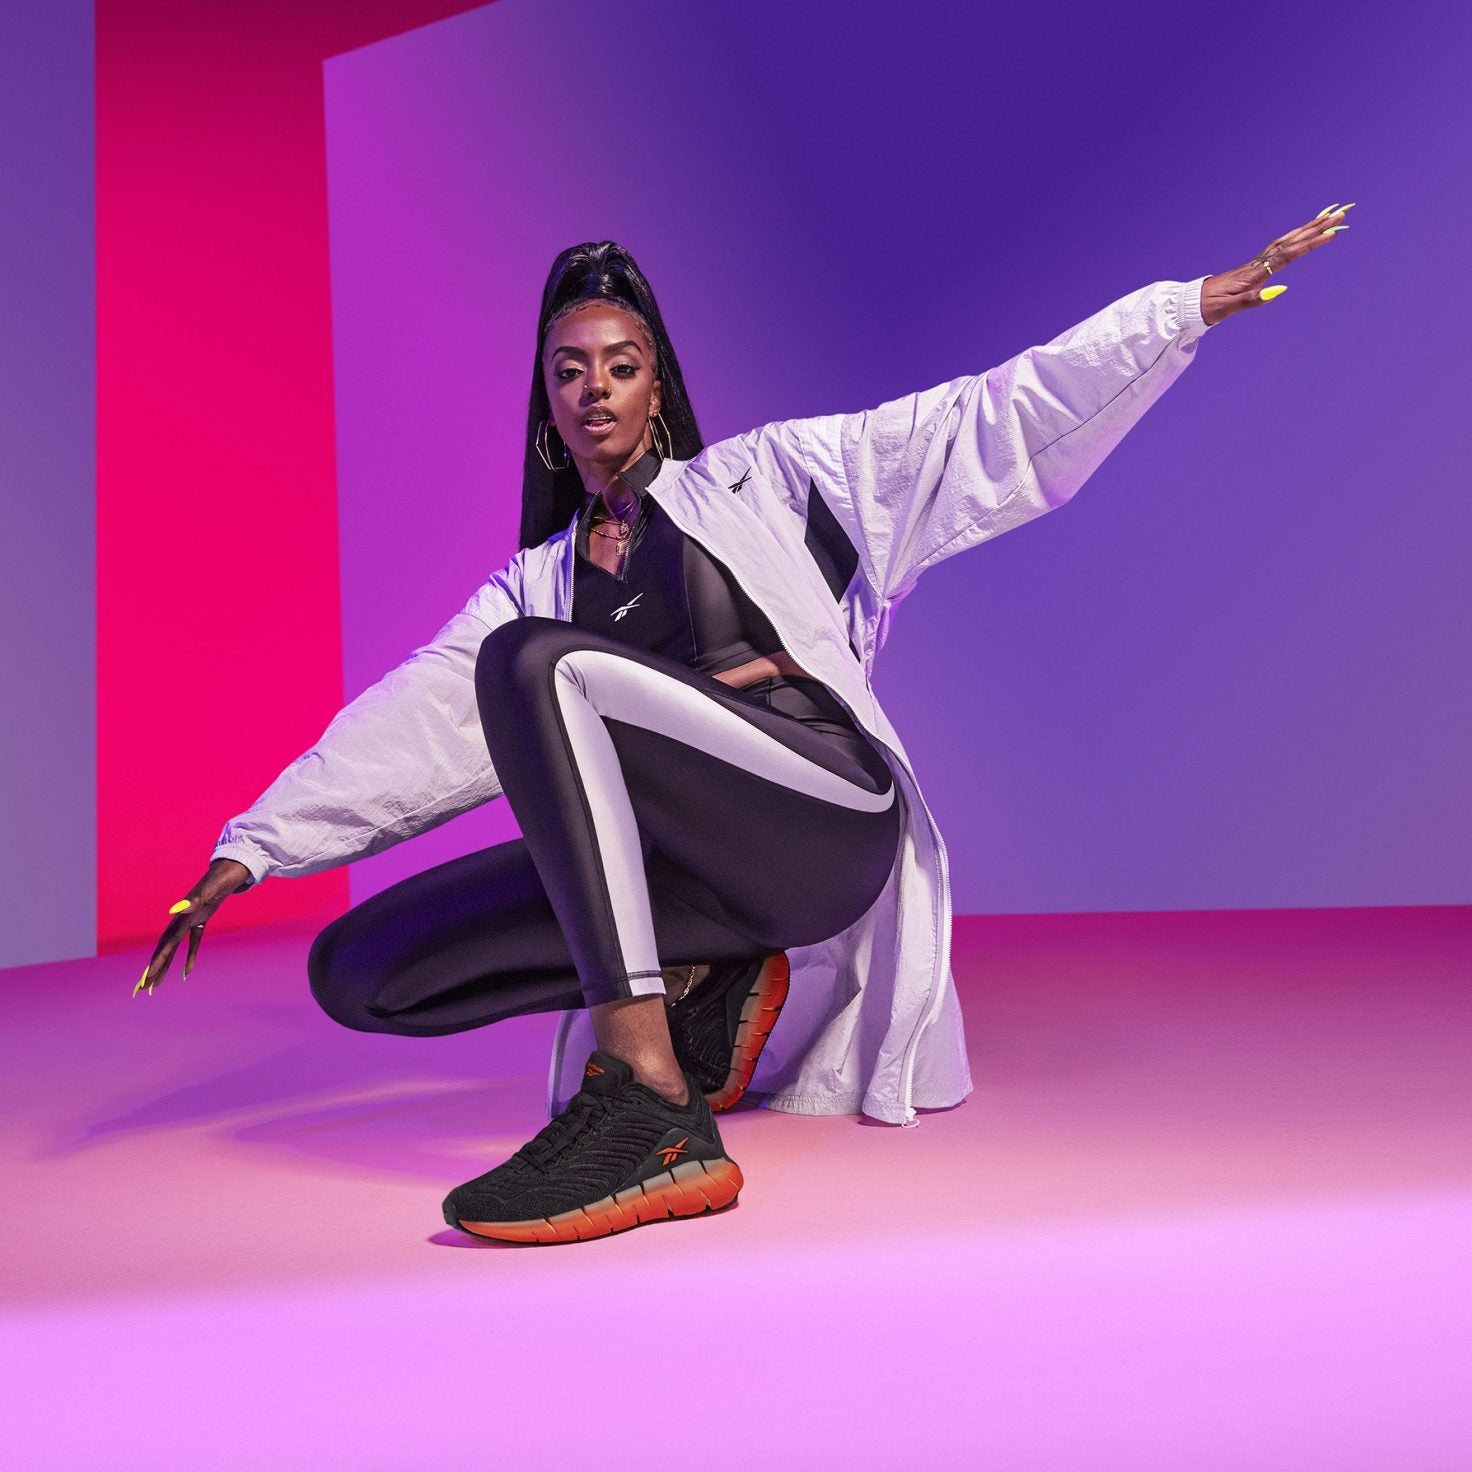 Atlanta Based Creative OHSO Is The New Face Of The Reebok Zig Kinetica